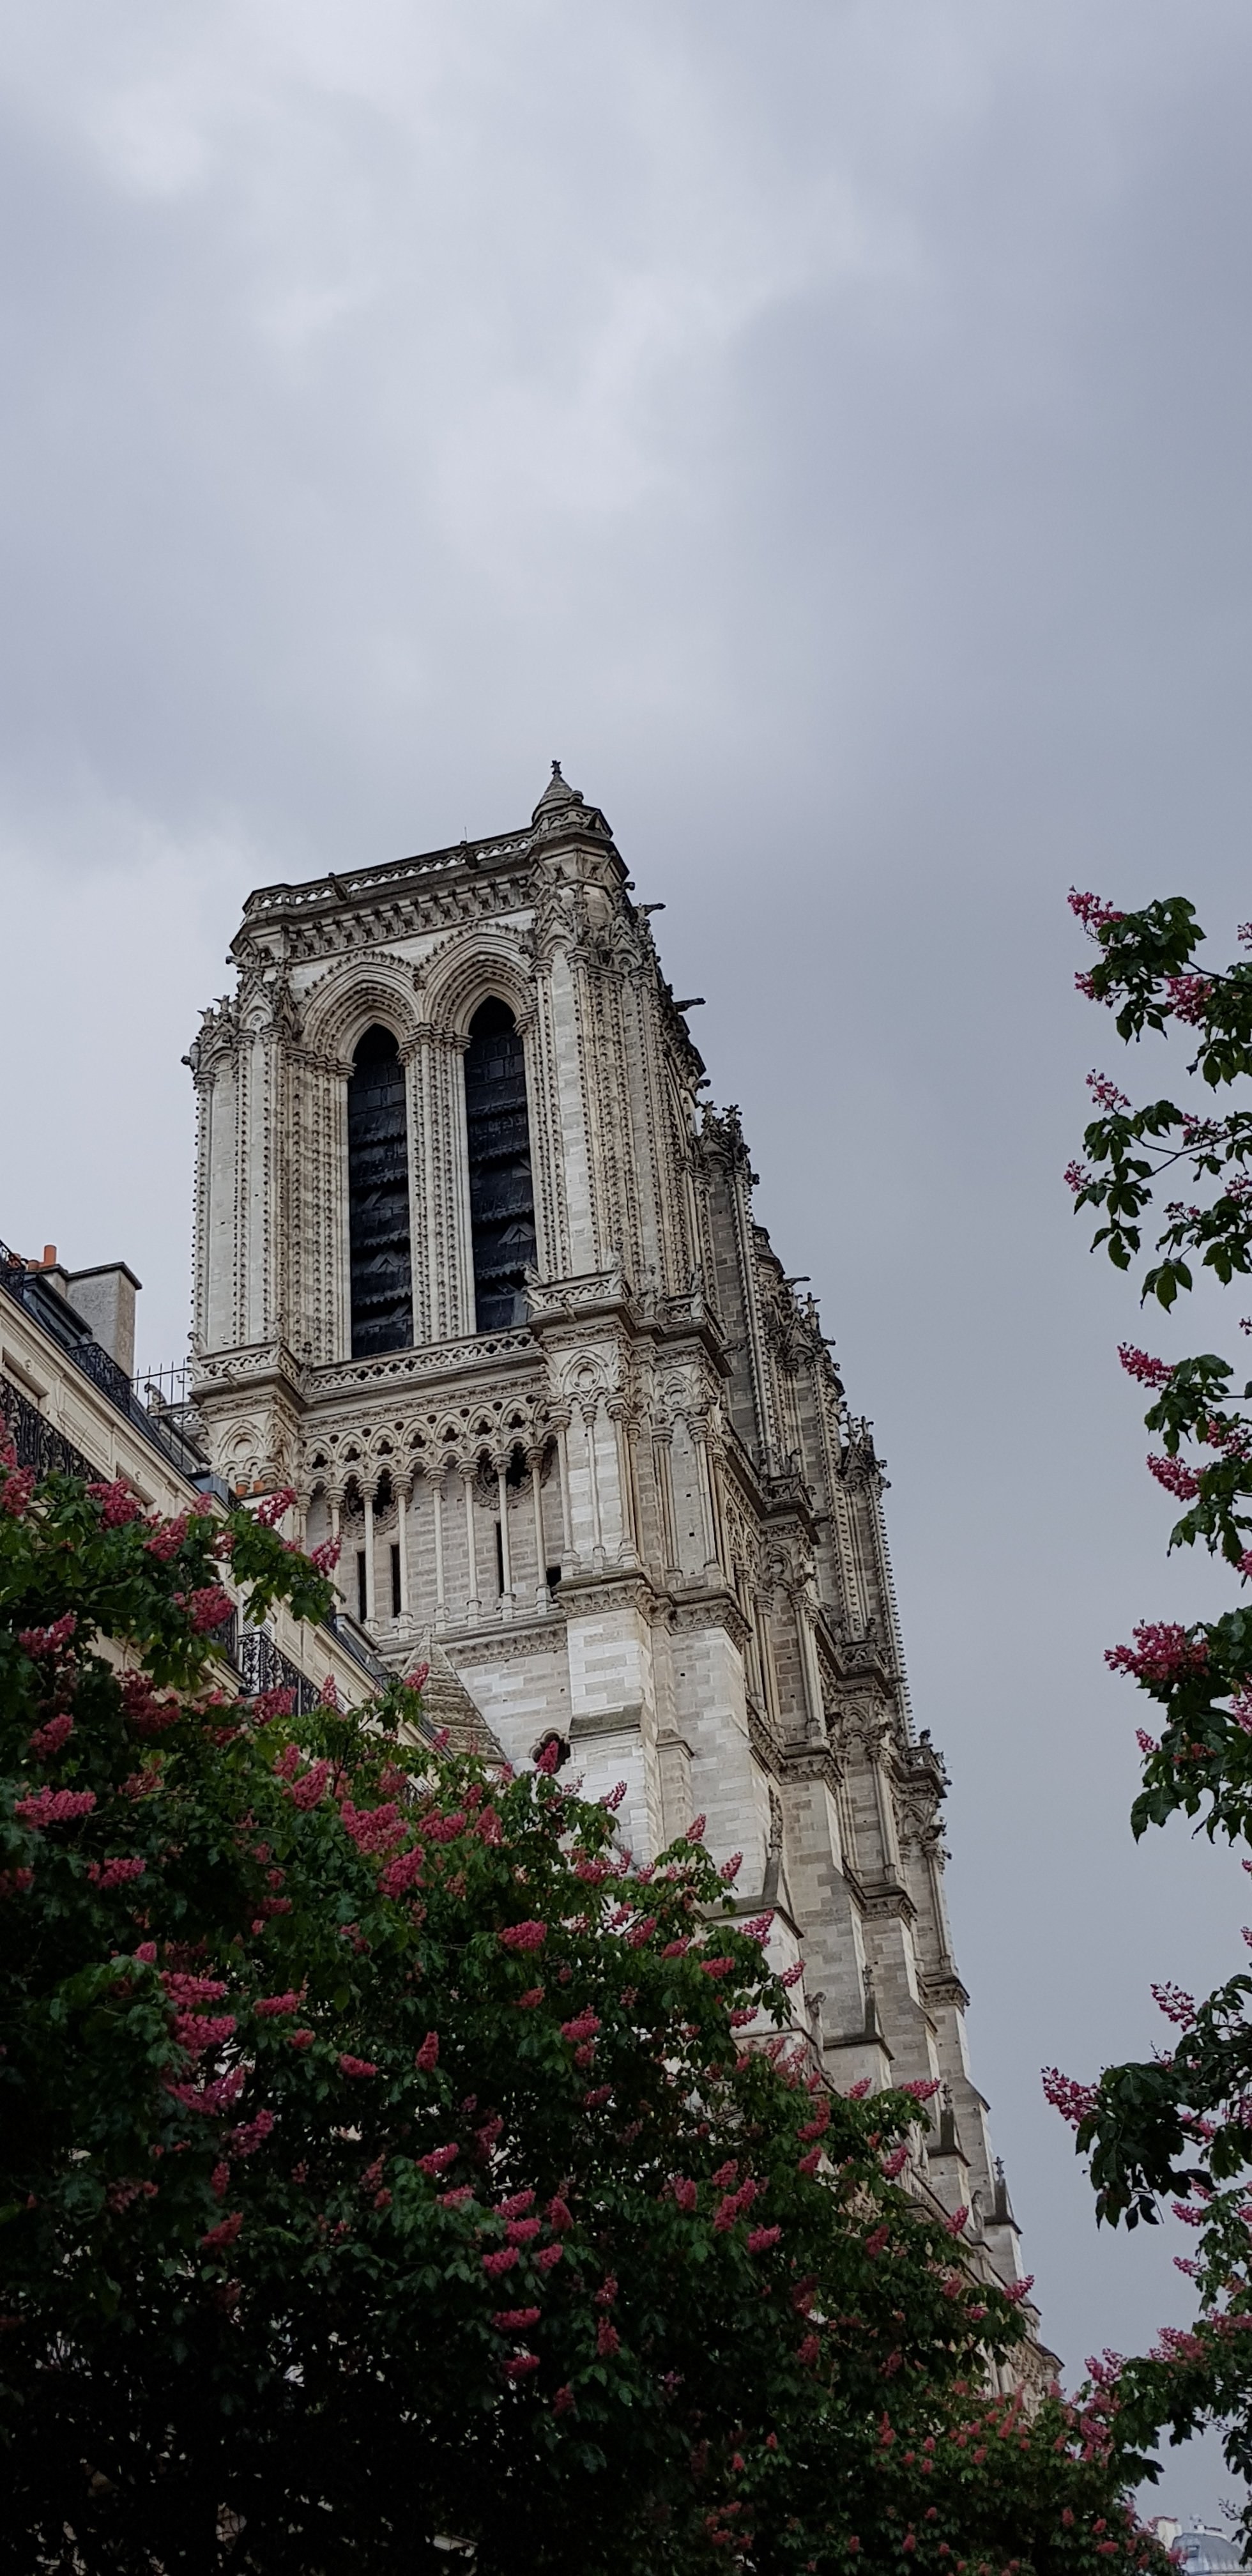 Notre Dame from the side after the fire to the roof